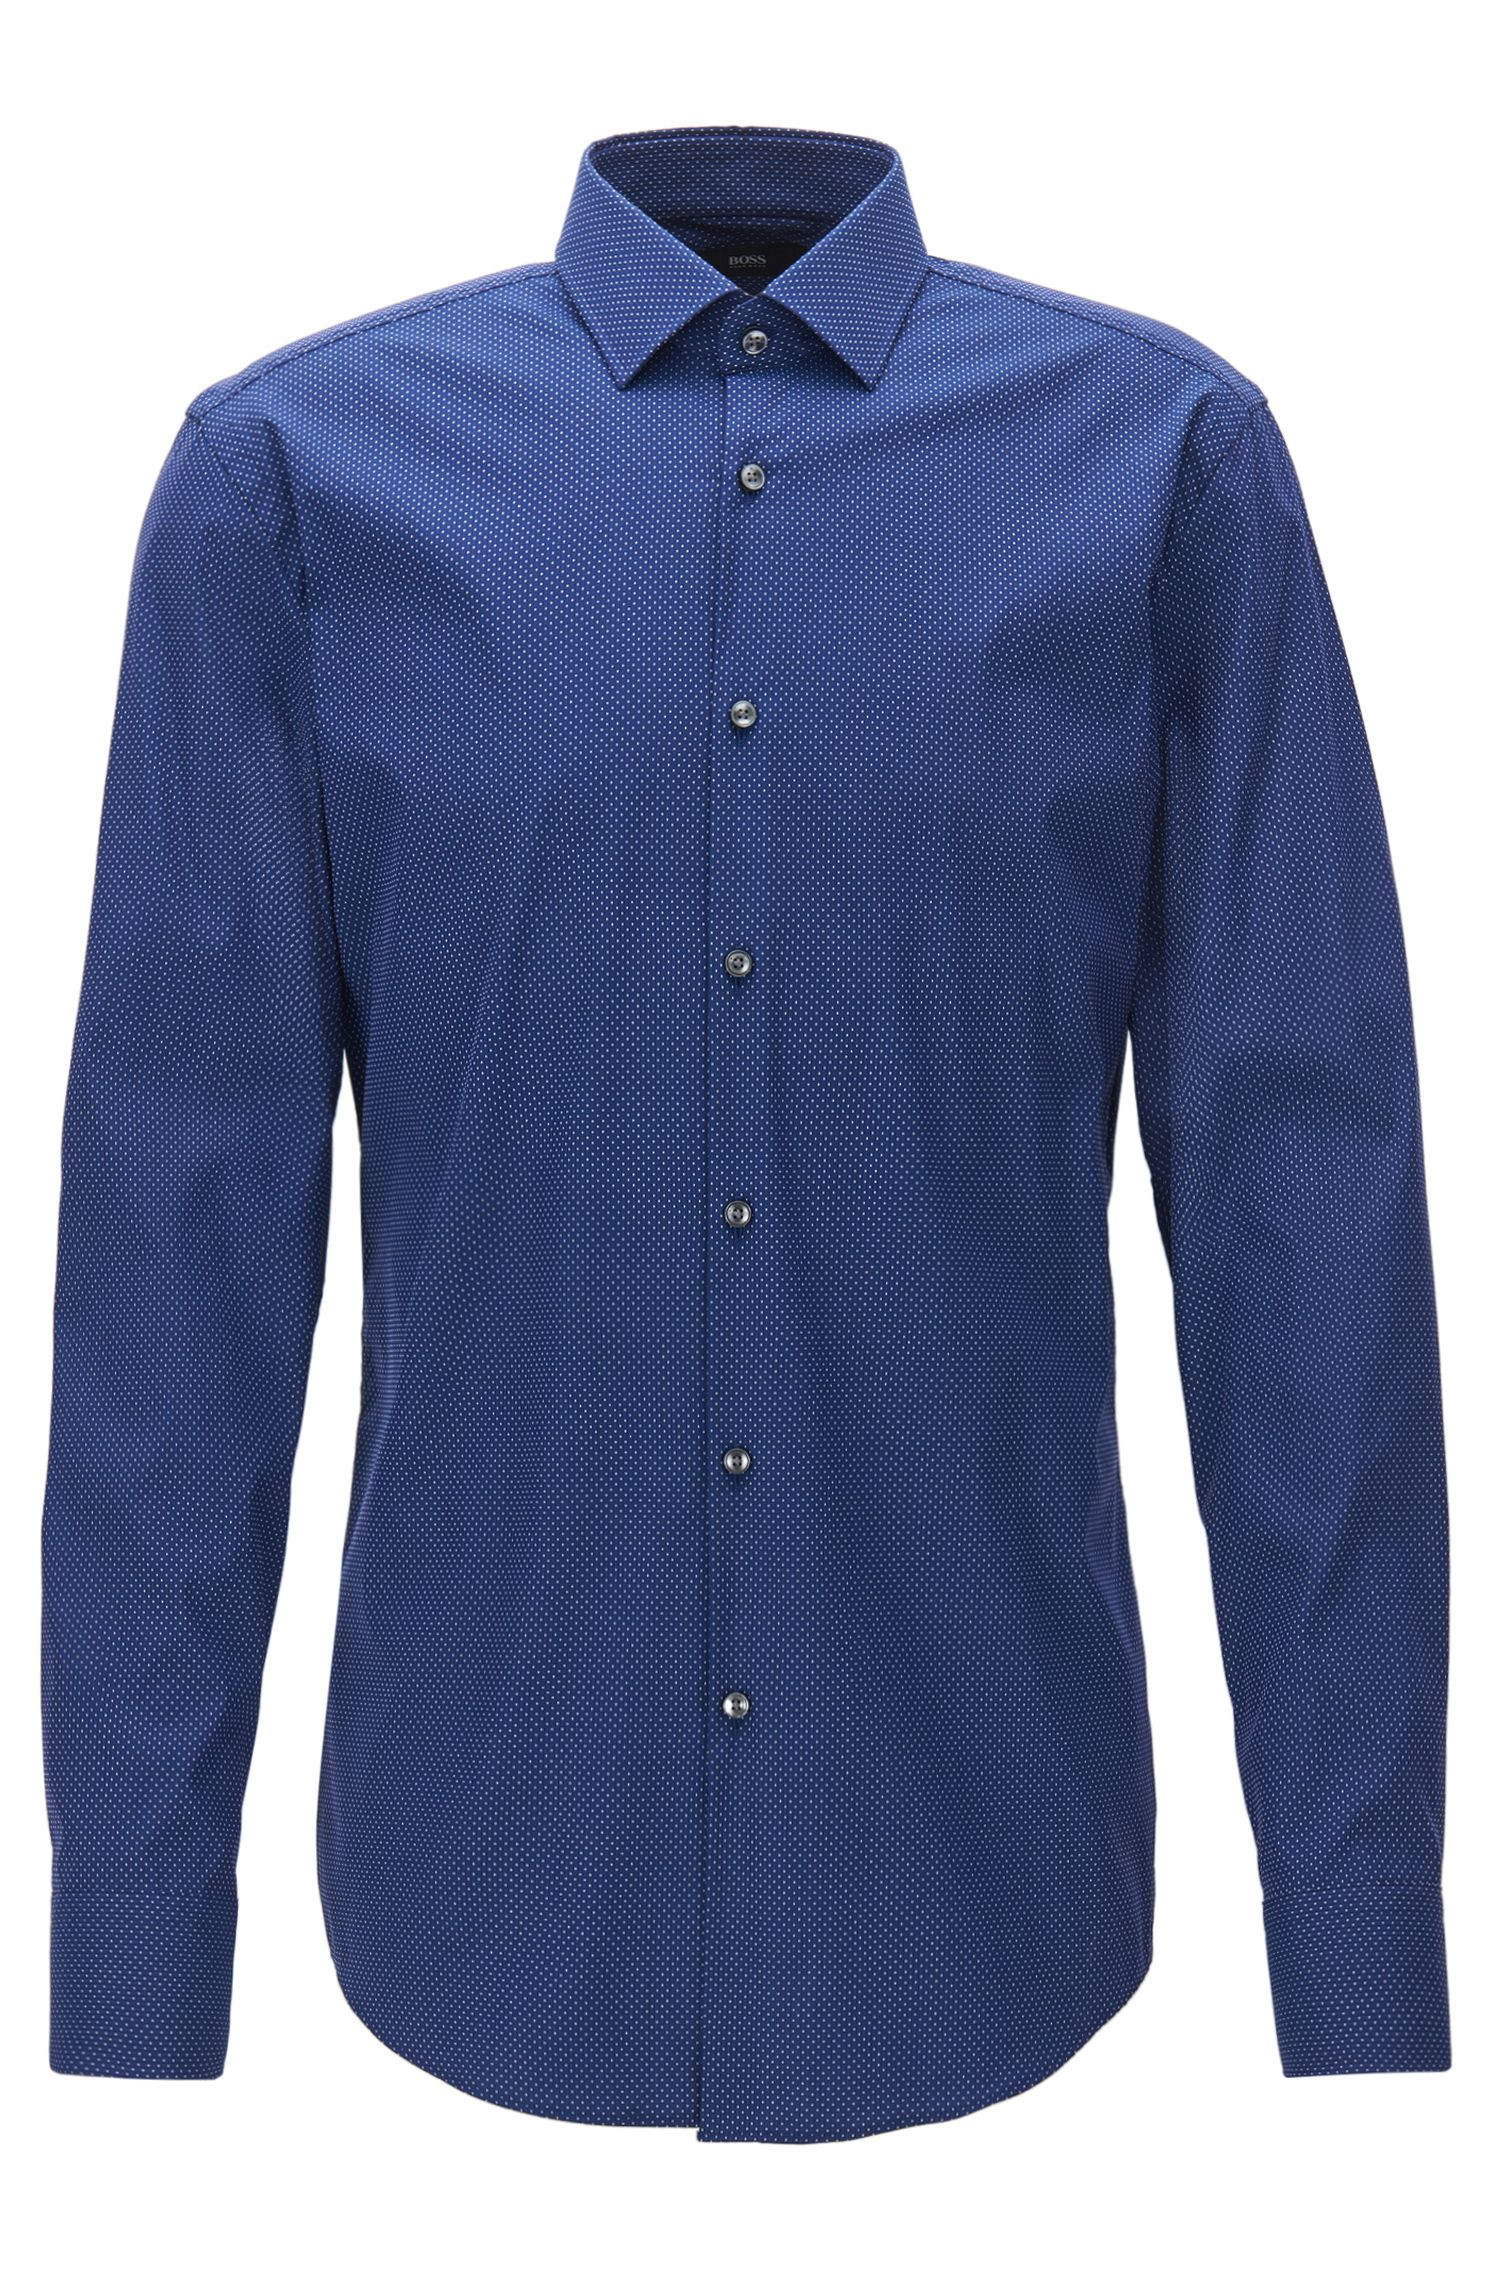 Pindot Stretch Cotton Dress Shirt, Slim Fit | Jenno